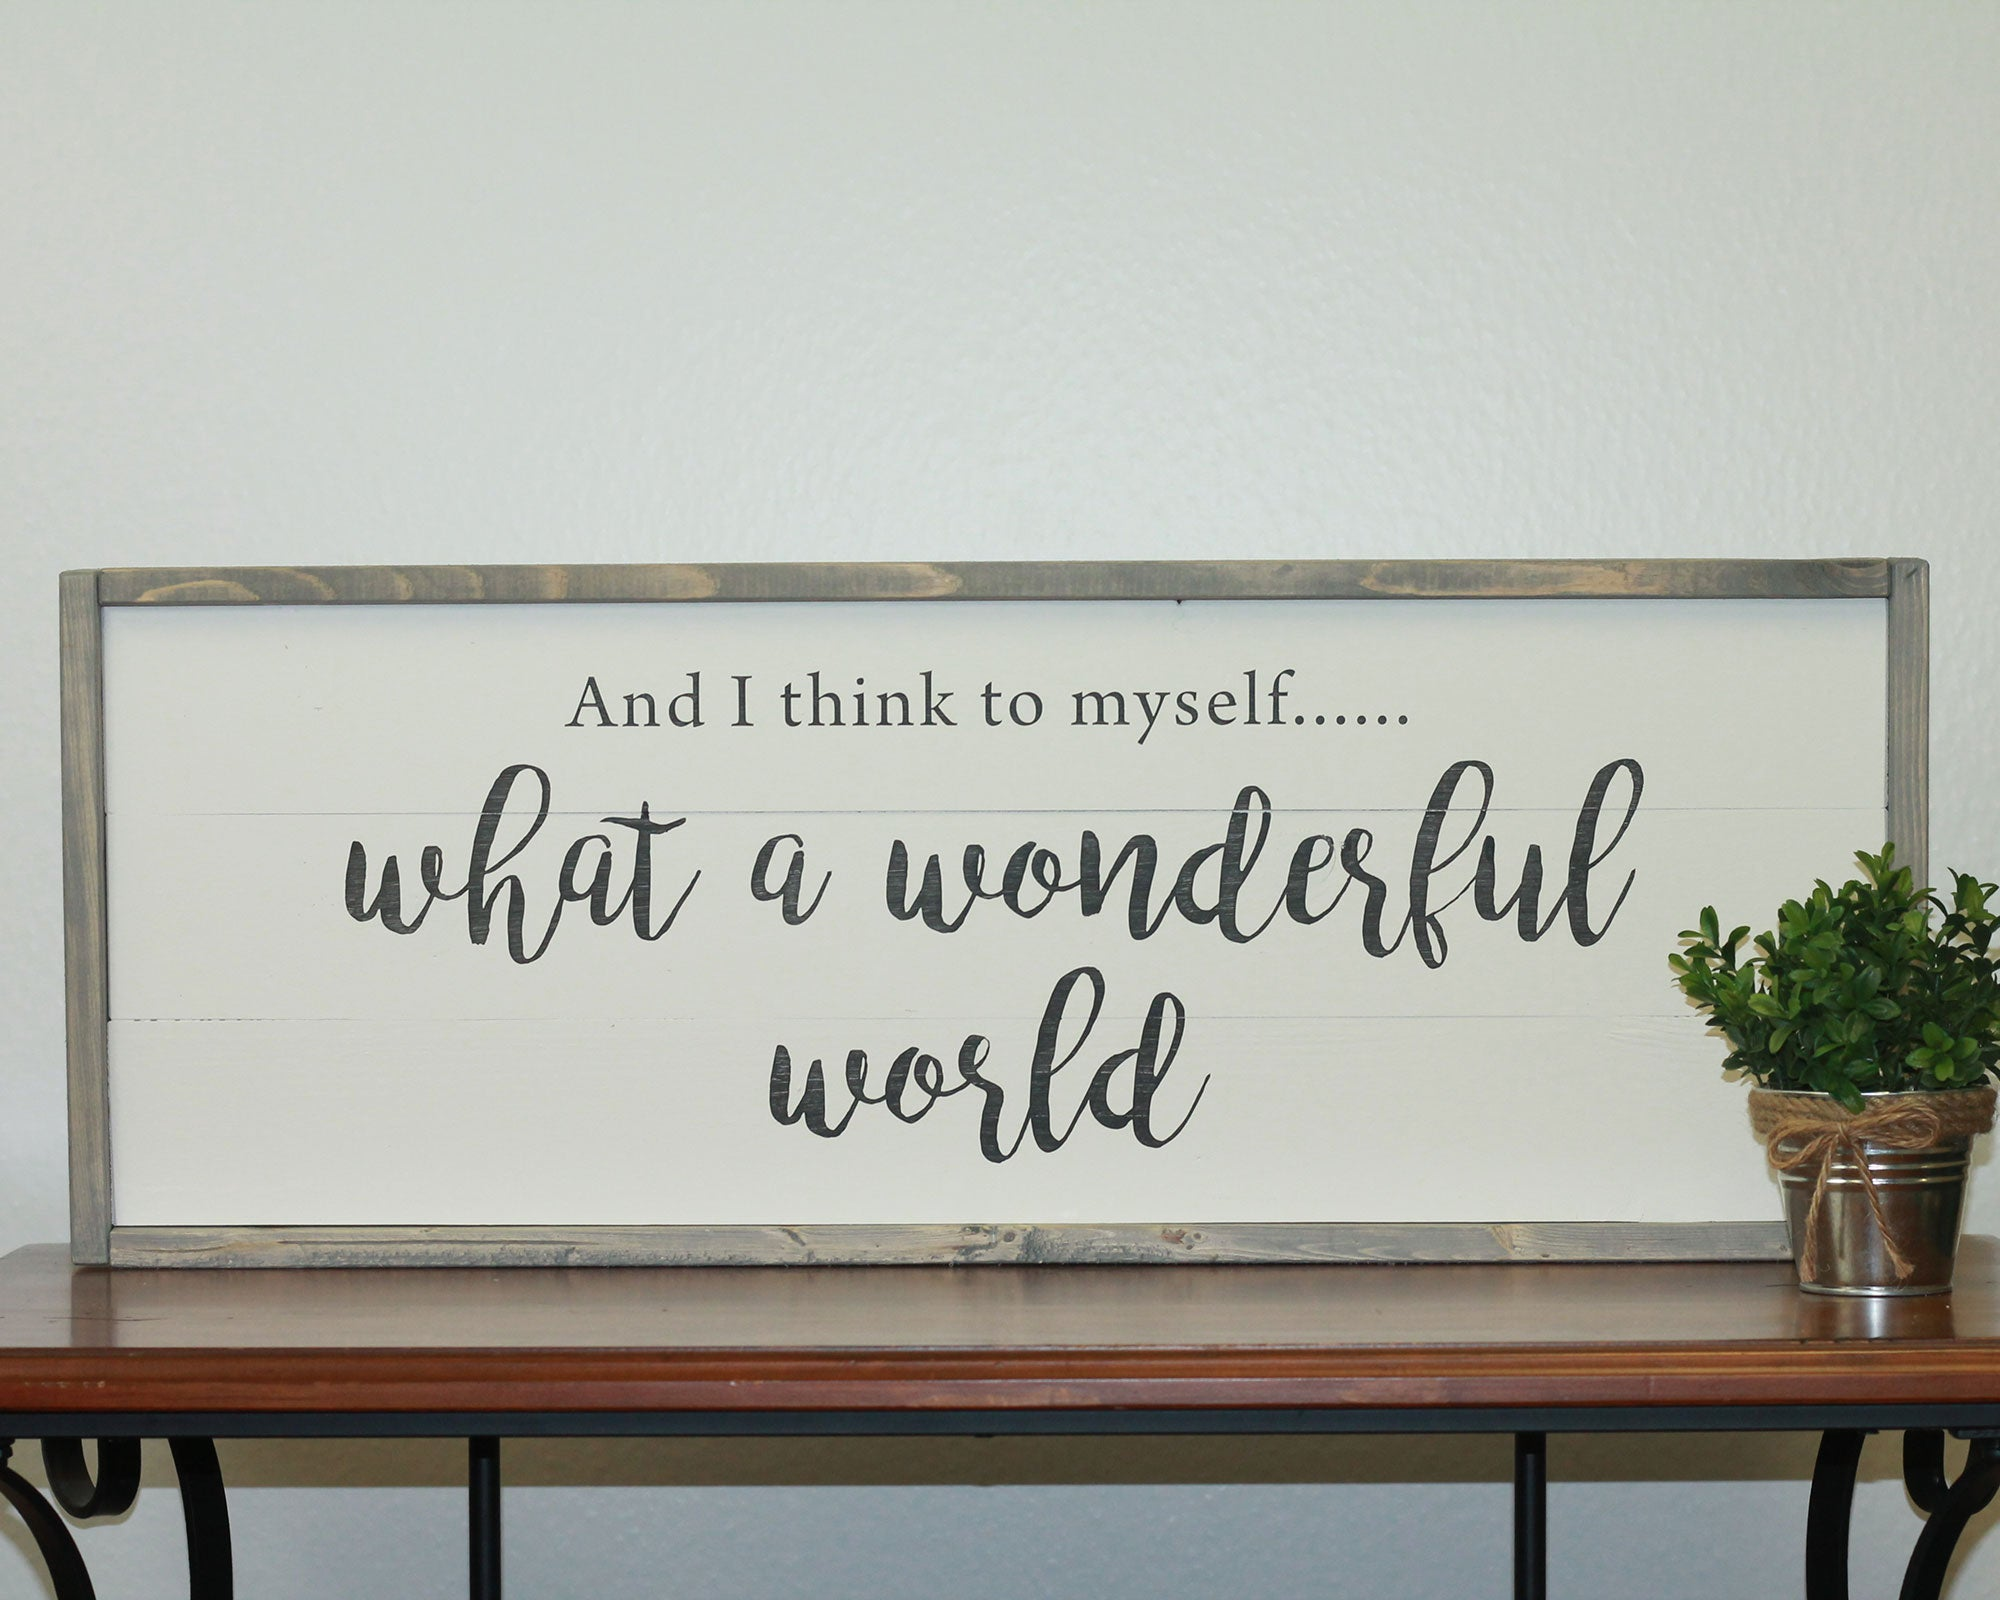 Wonderful World | 10 x 30 Vintage